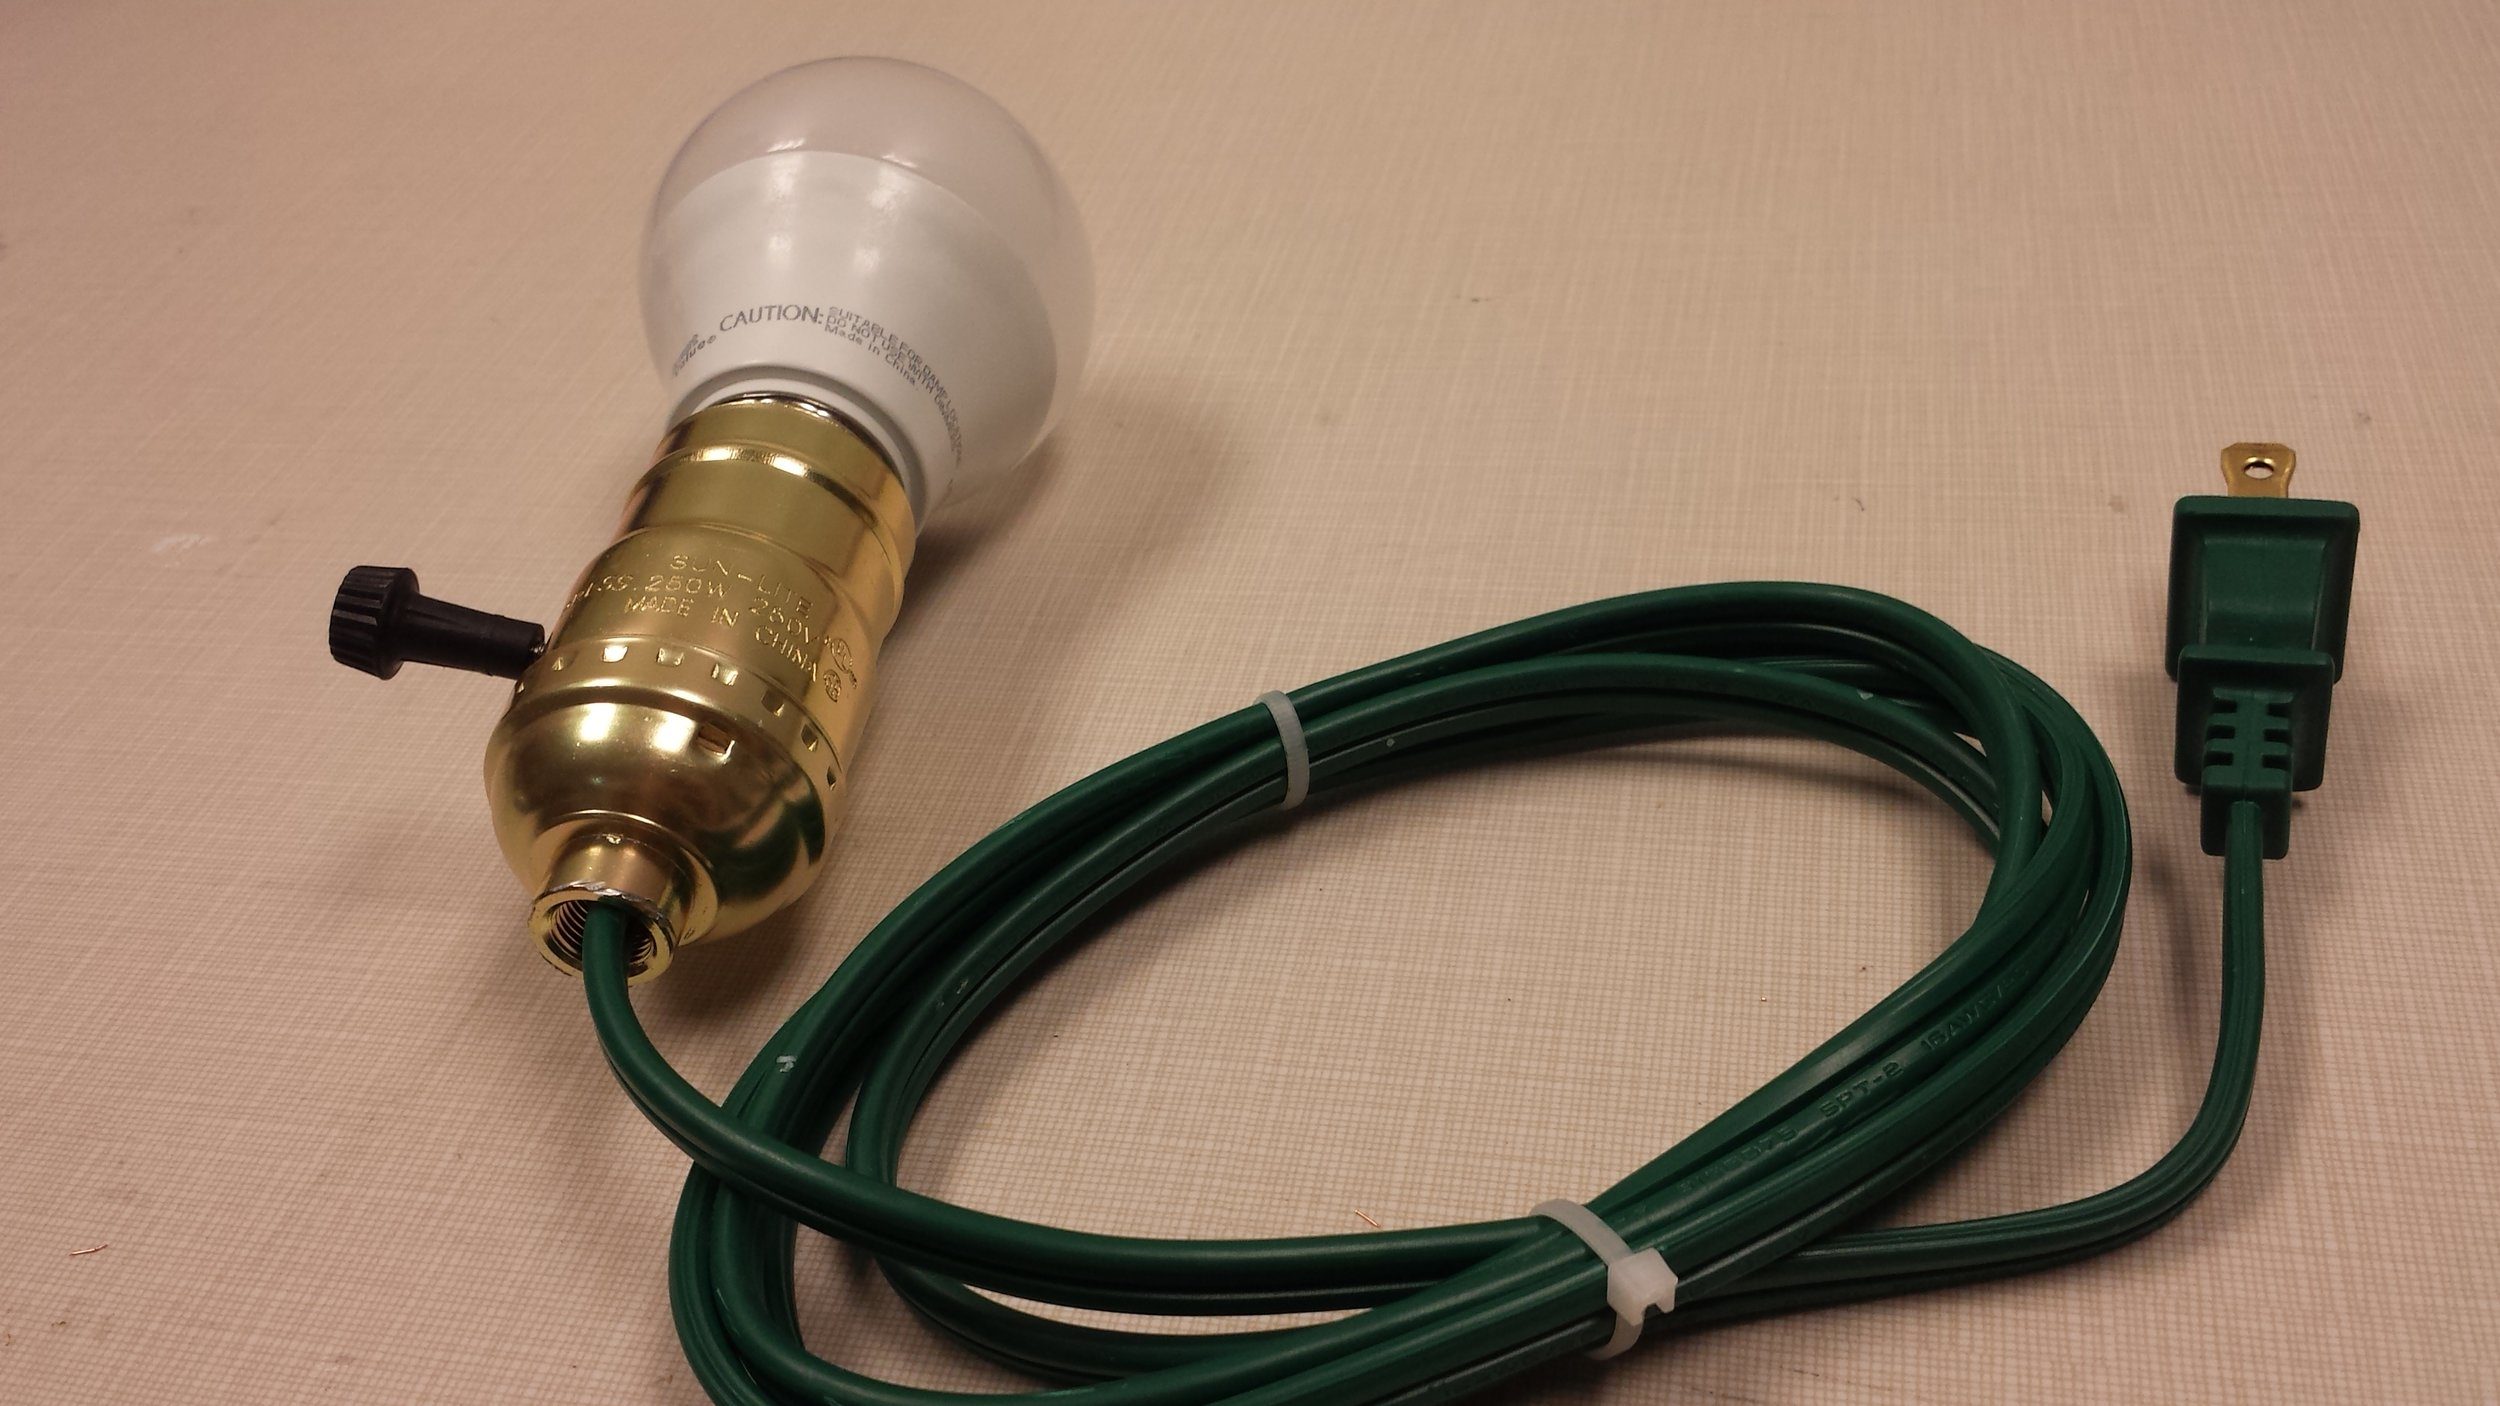 My first completed lightbulb!